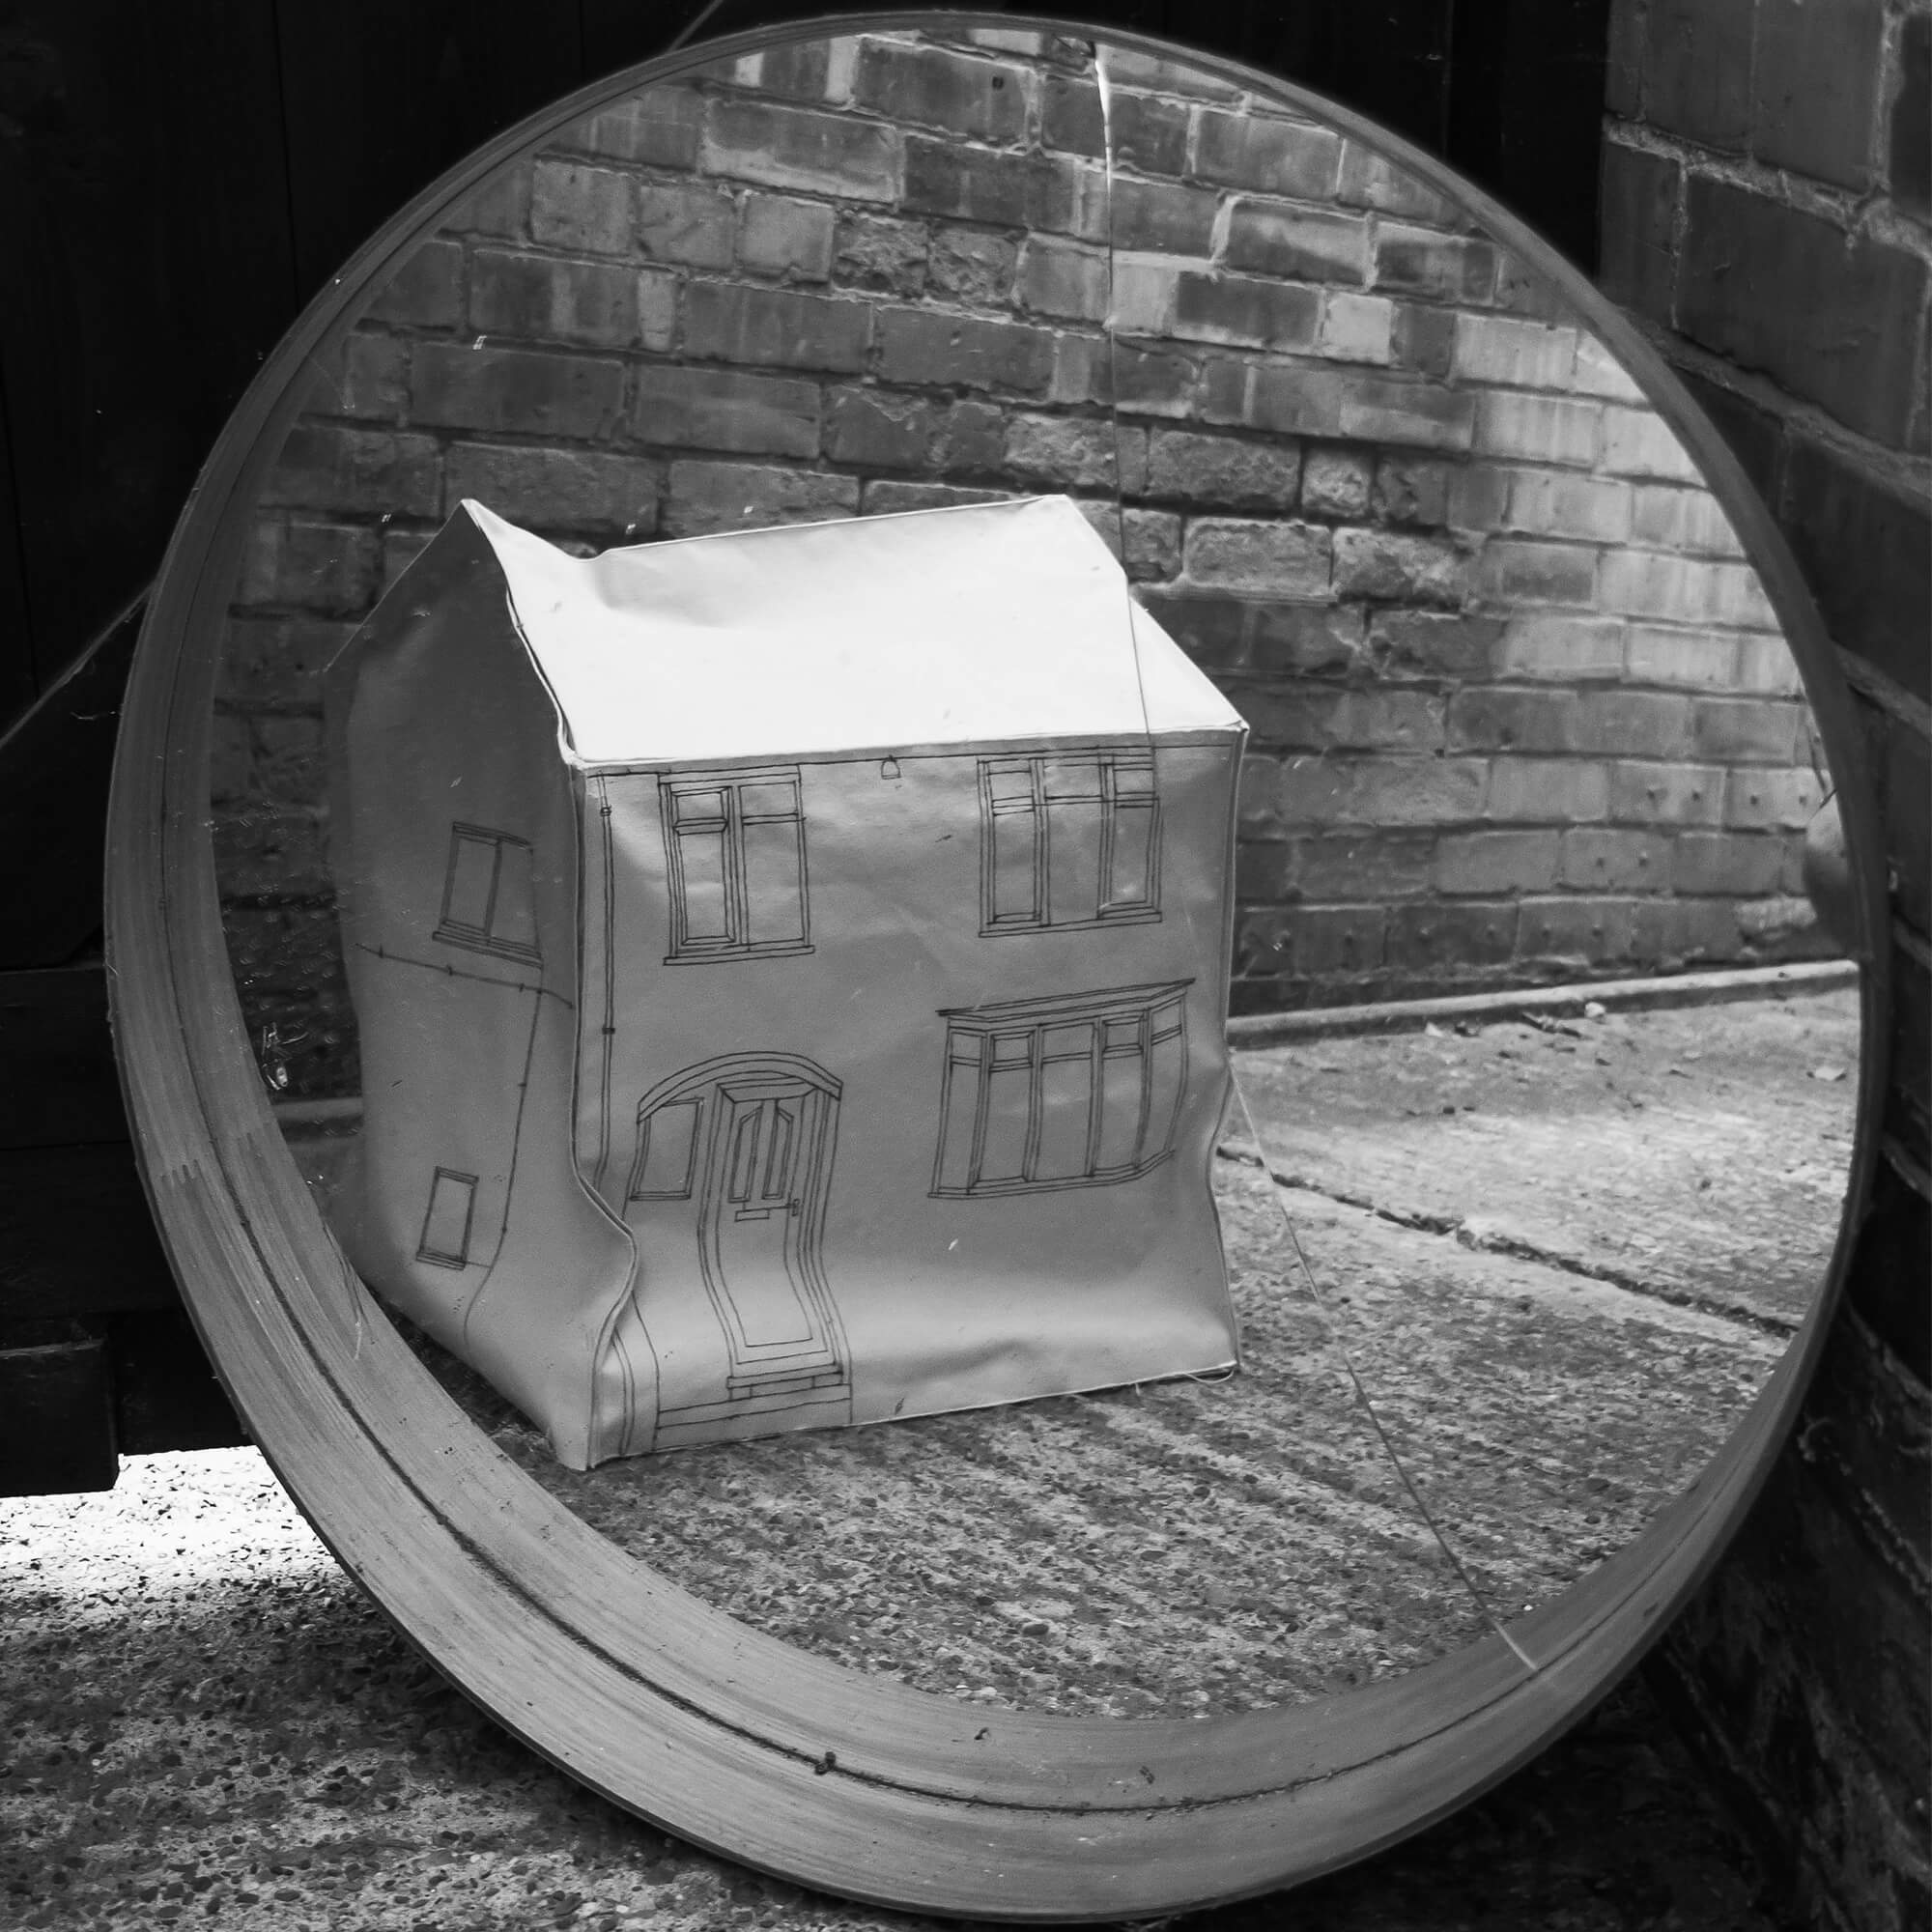 A black and white image of a paper model of a house shown in a mirror in a brick background